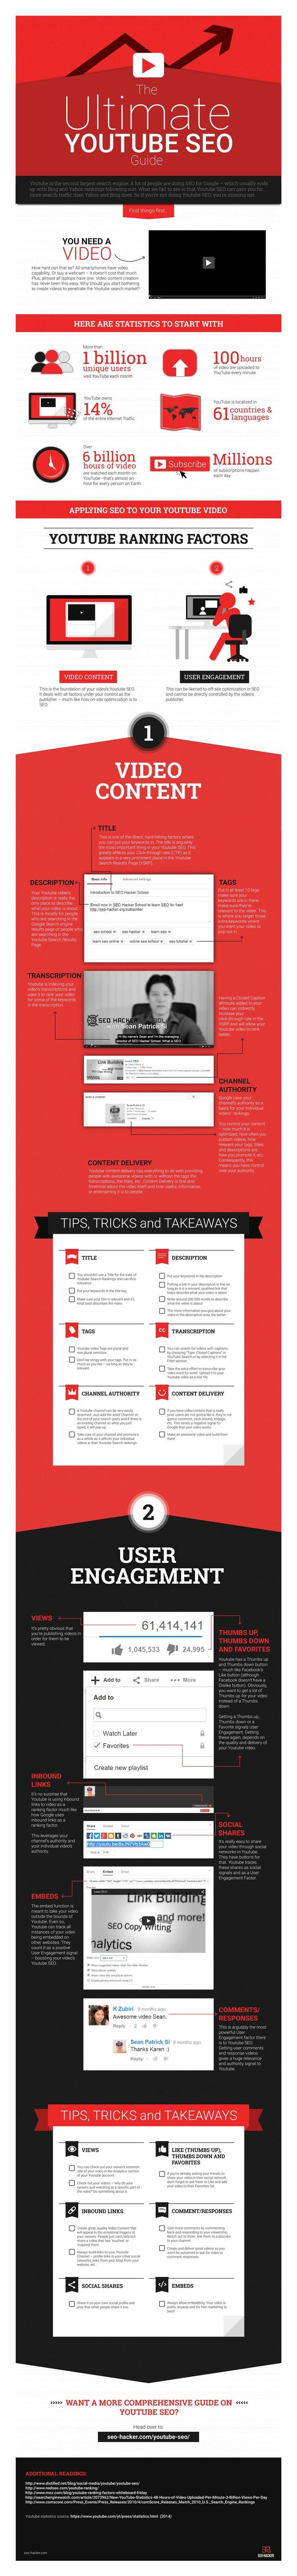 The Ultimate Youtube SEO Guide - #infographic #SEOGuide